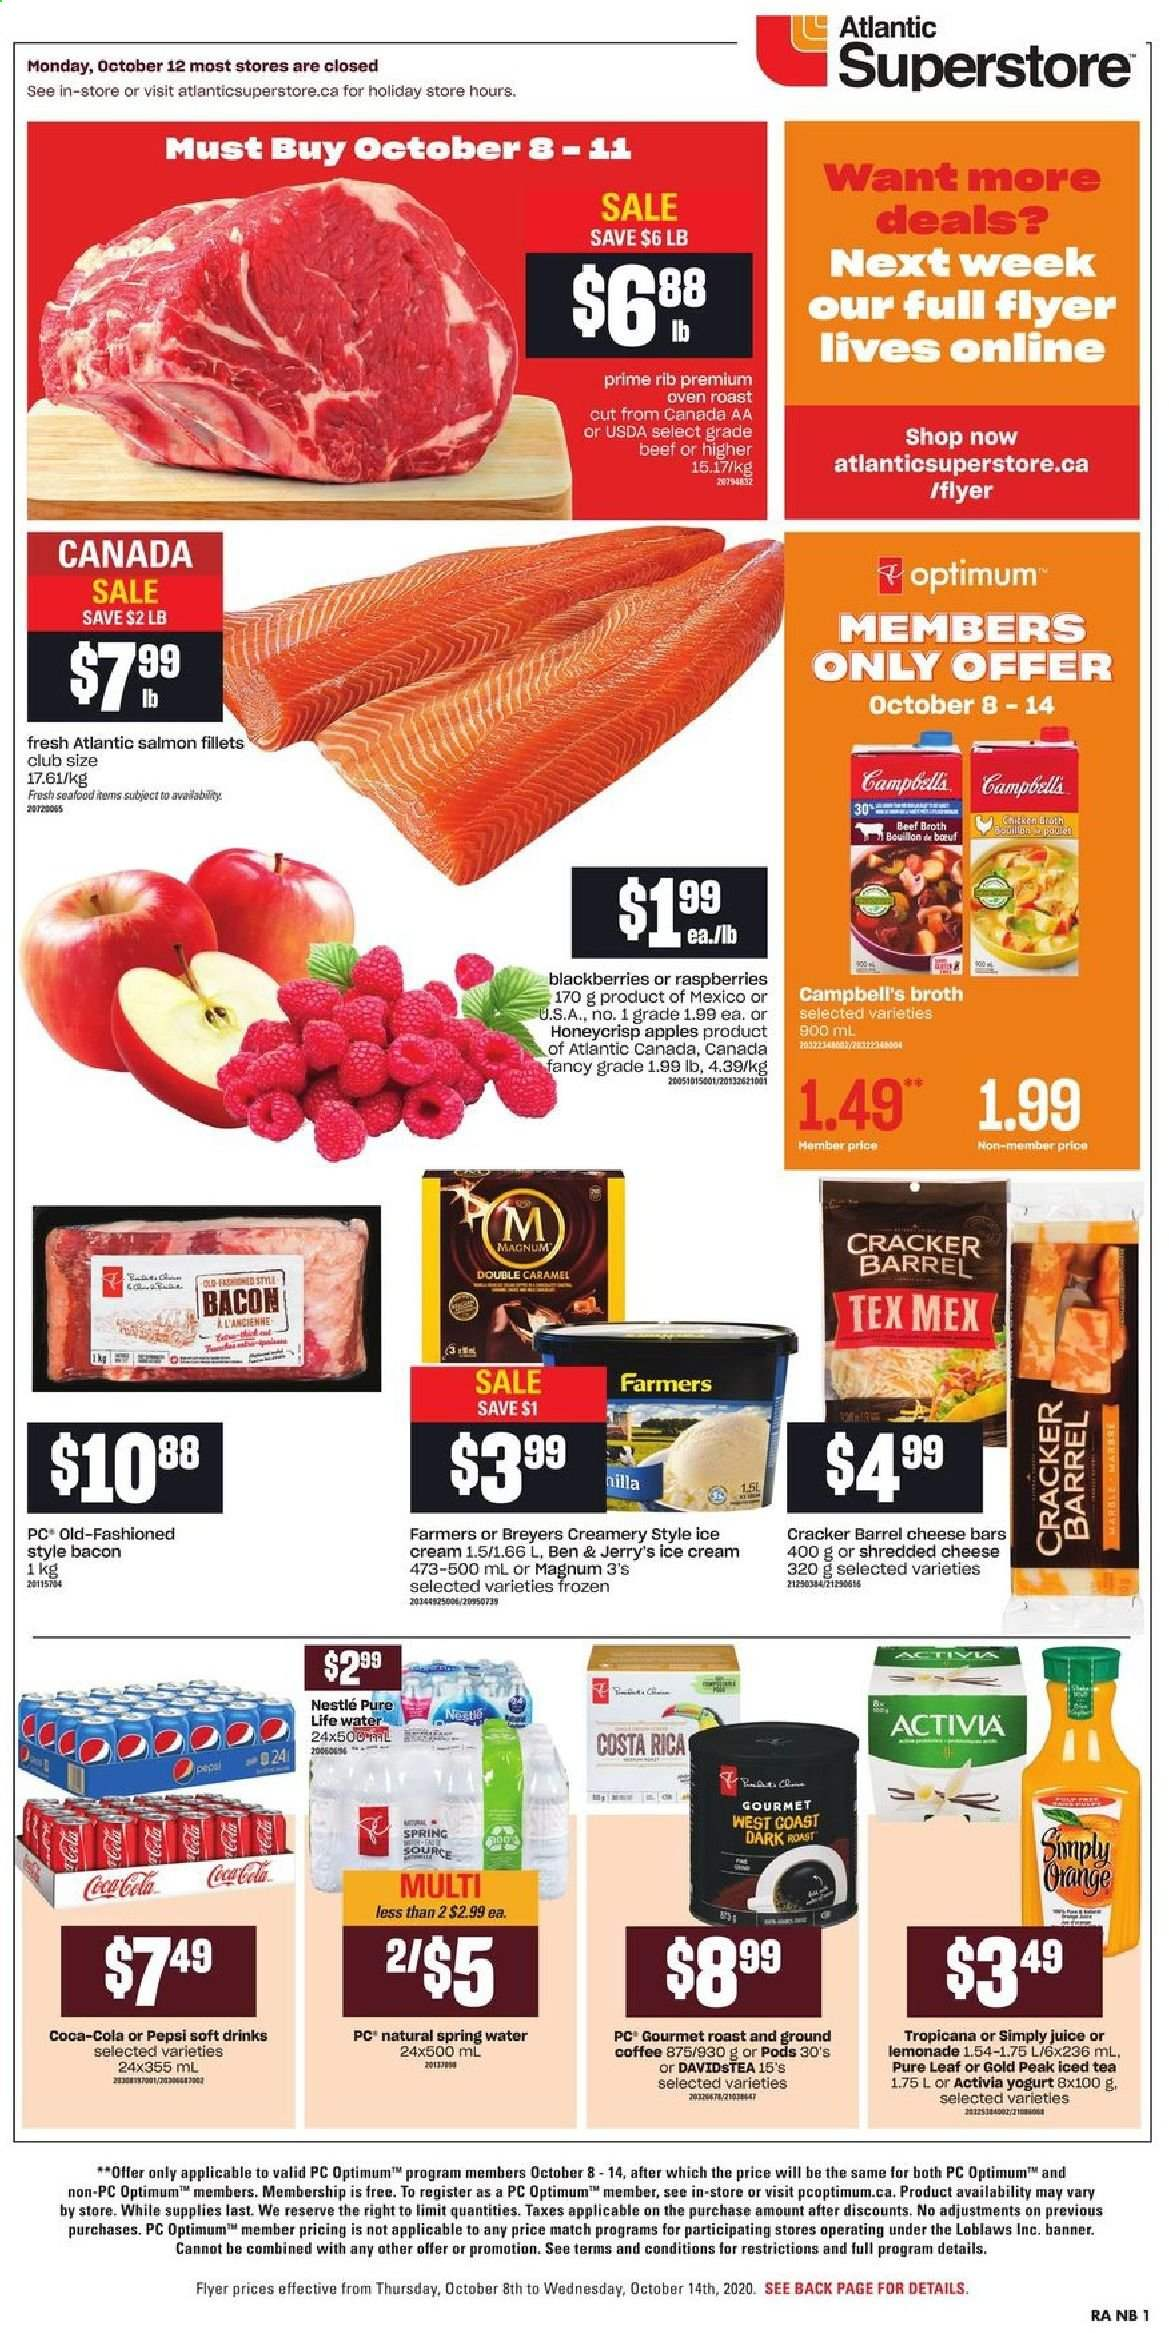 Atlantic Superstore Flyer - October 08, 2020 - October 14, 2020 - Sales products - apples, bacon, beef broth, beef meat, blackberries, bouillon, campbell's, caramel, coca-cola, coffee, frozen, lemonade, magnum, nestlé, raspberries, salmon, shredded cheese, spring water, tea, yogurt, ice cream, pepsi, oven, cheese, juice, iced tea, seafood, cracker, poulet, activia, tropicana, spring, apple, roast, ground coffee. Page 1.